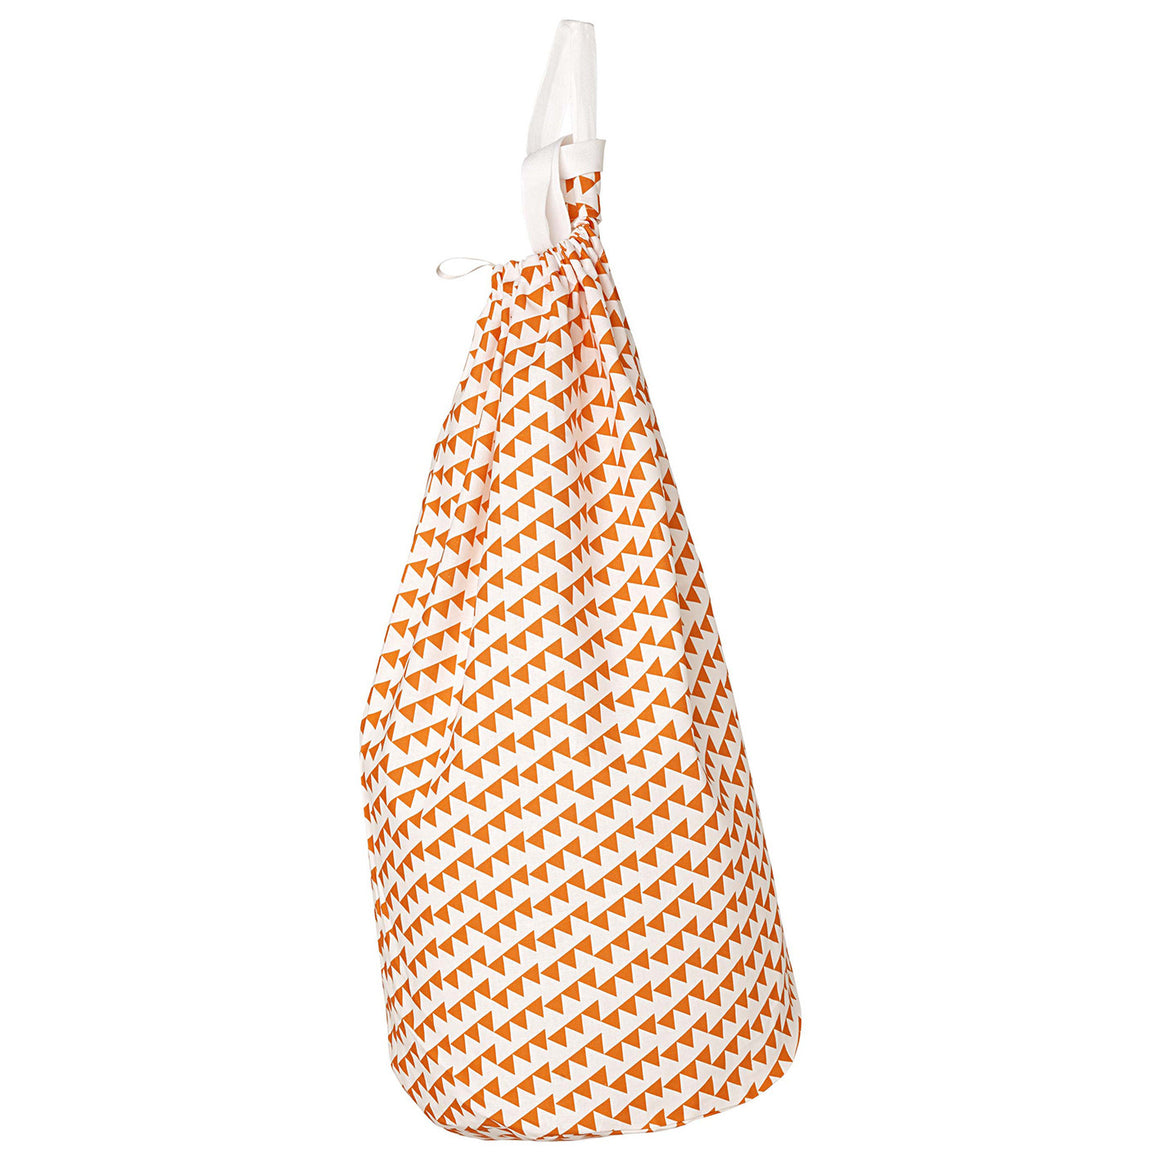 Bunting Geometric Pattern Cotton Linen Drawstring Laundry & Storage Bag in Bright Pumpkin Orange ships from Canada (USA)